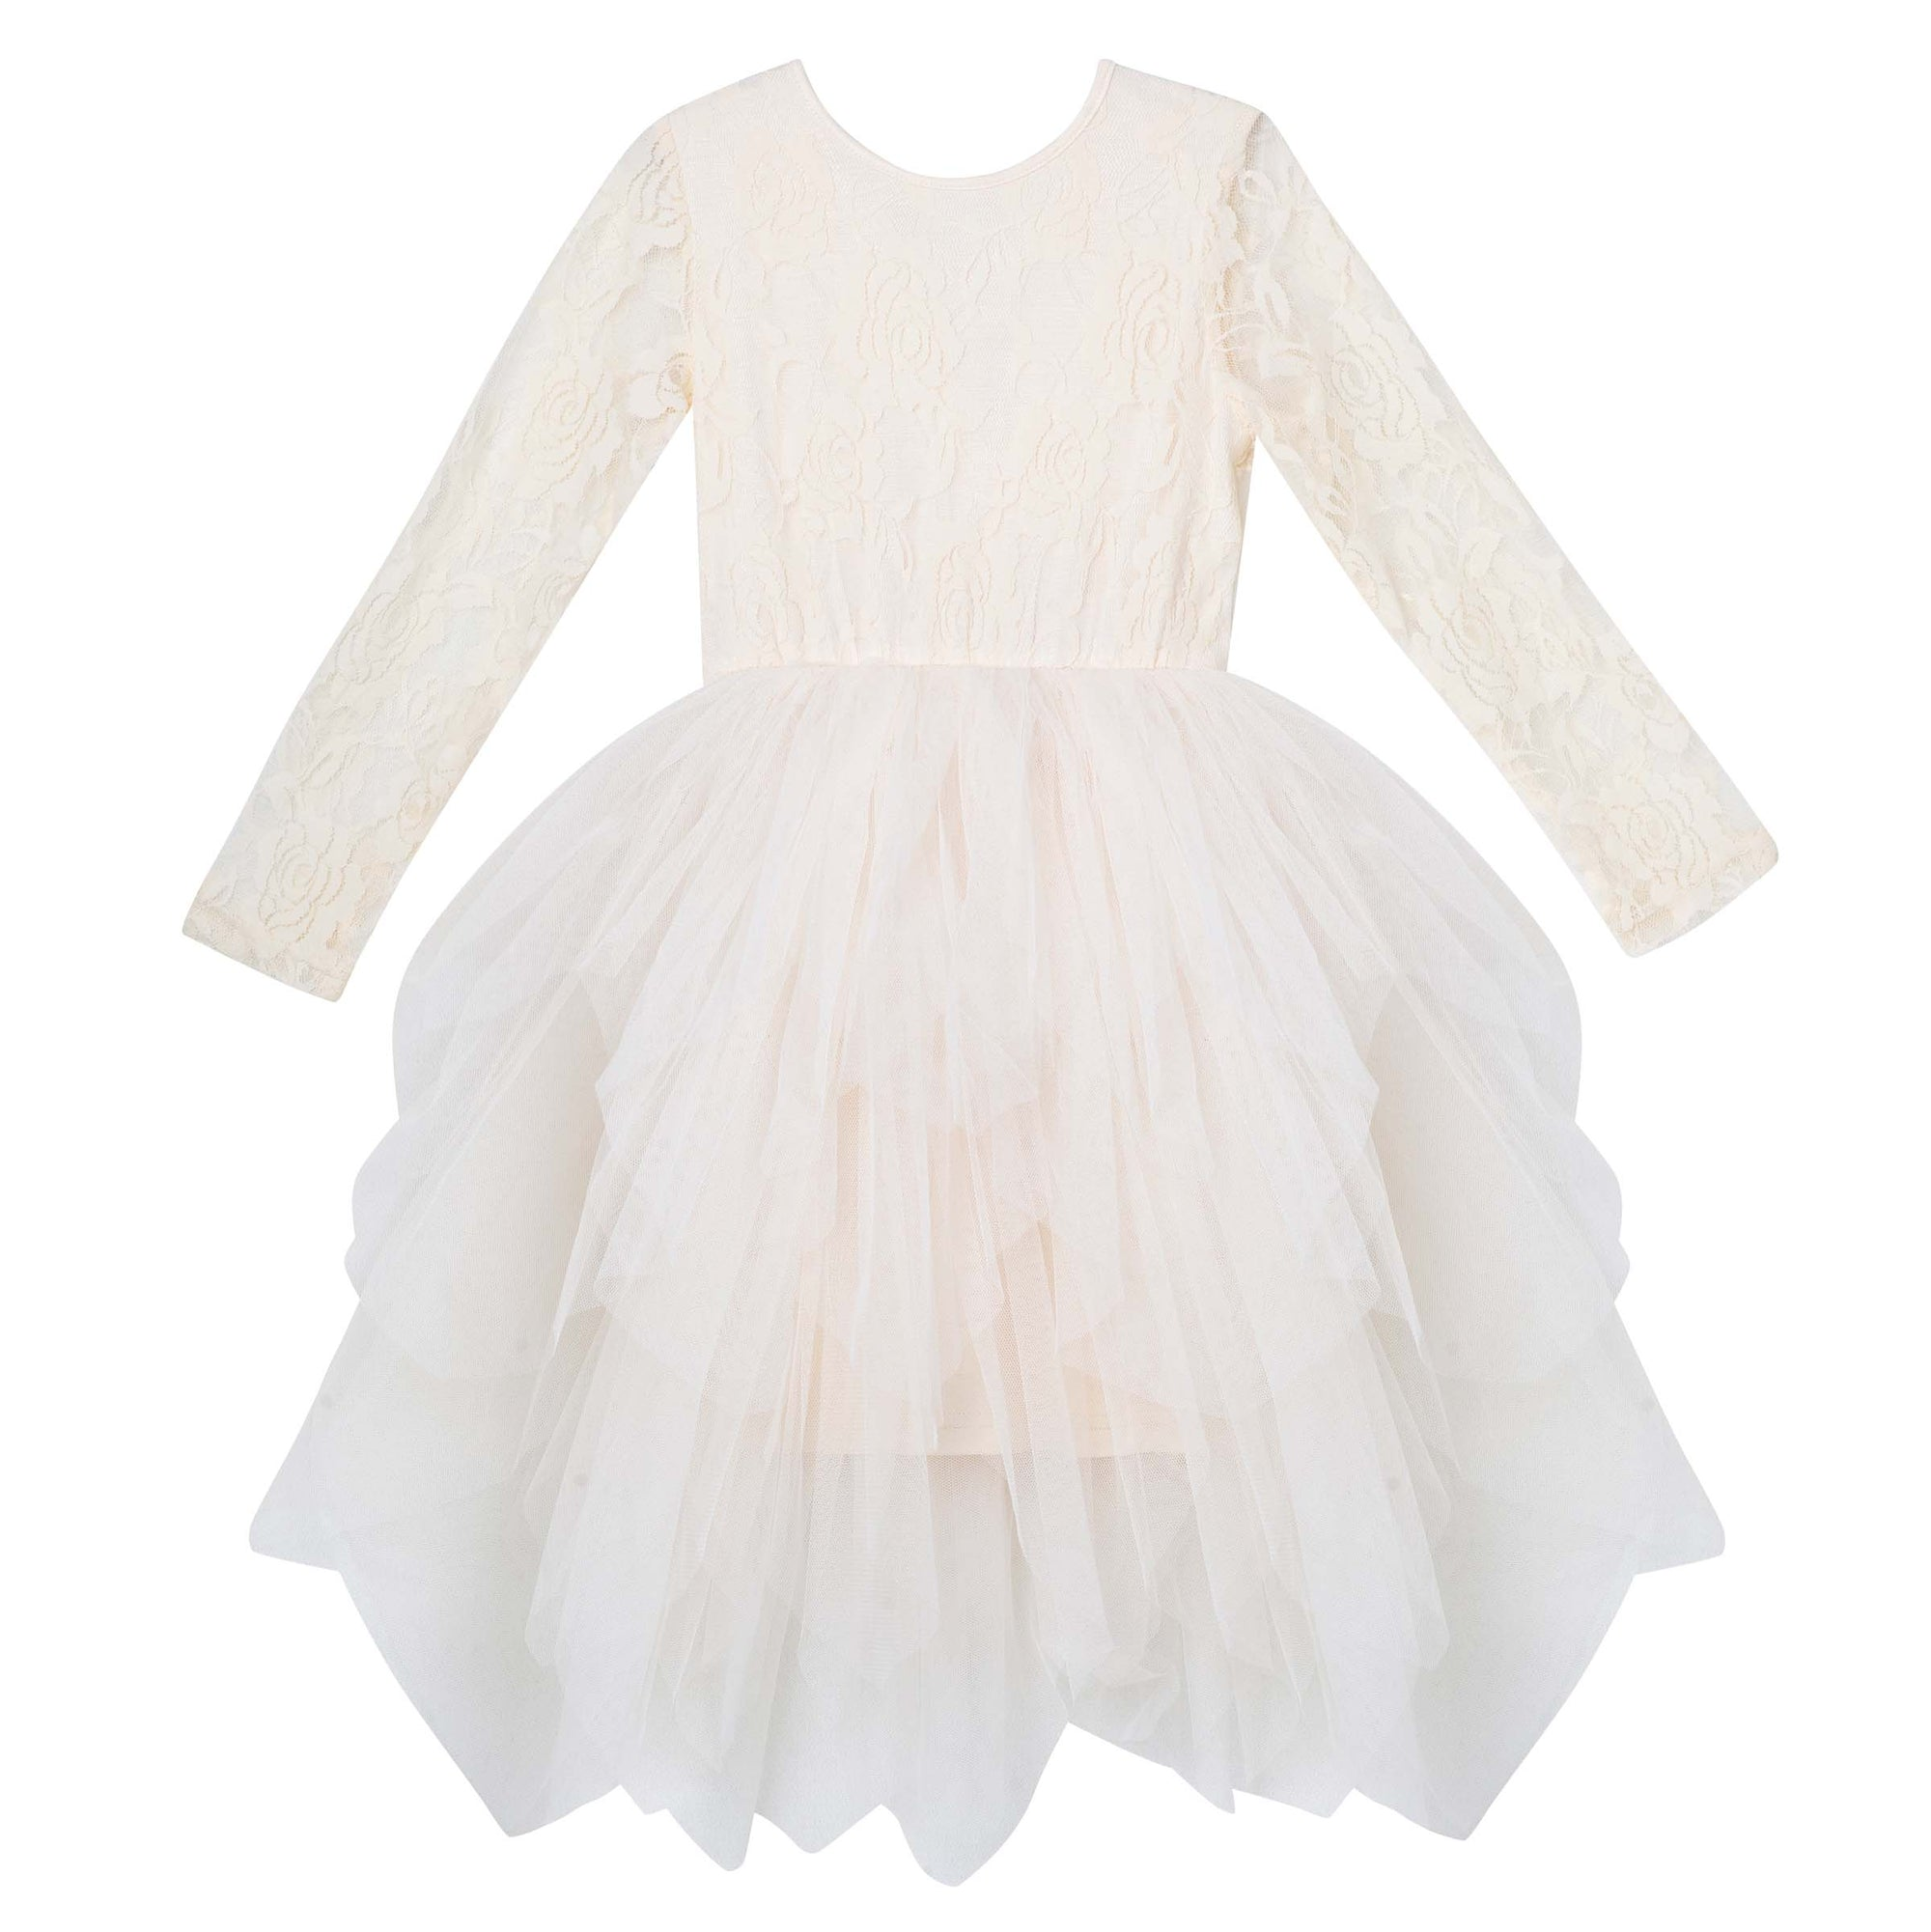 Sophie L/S Lace Bodice Tutu Dress - Beige